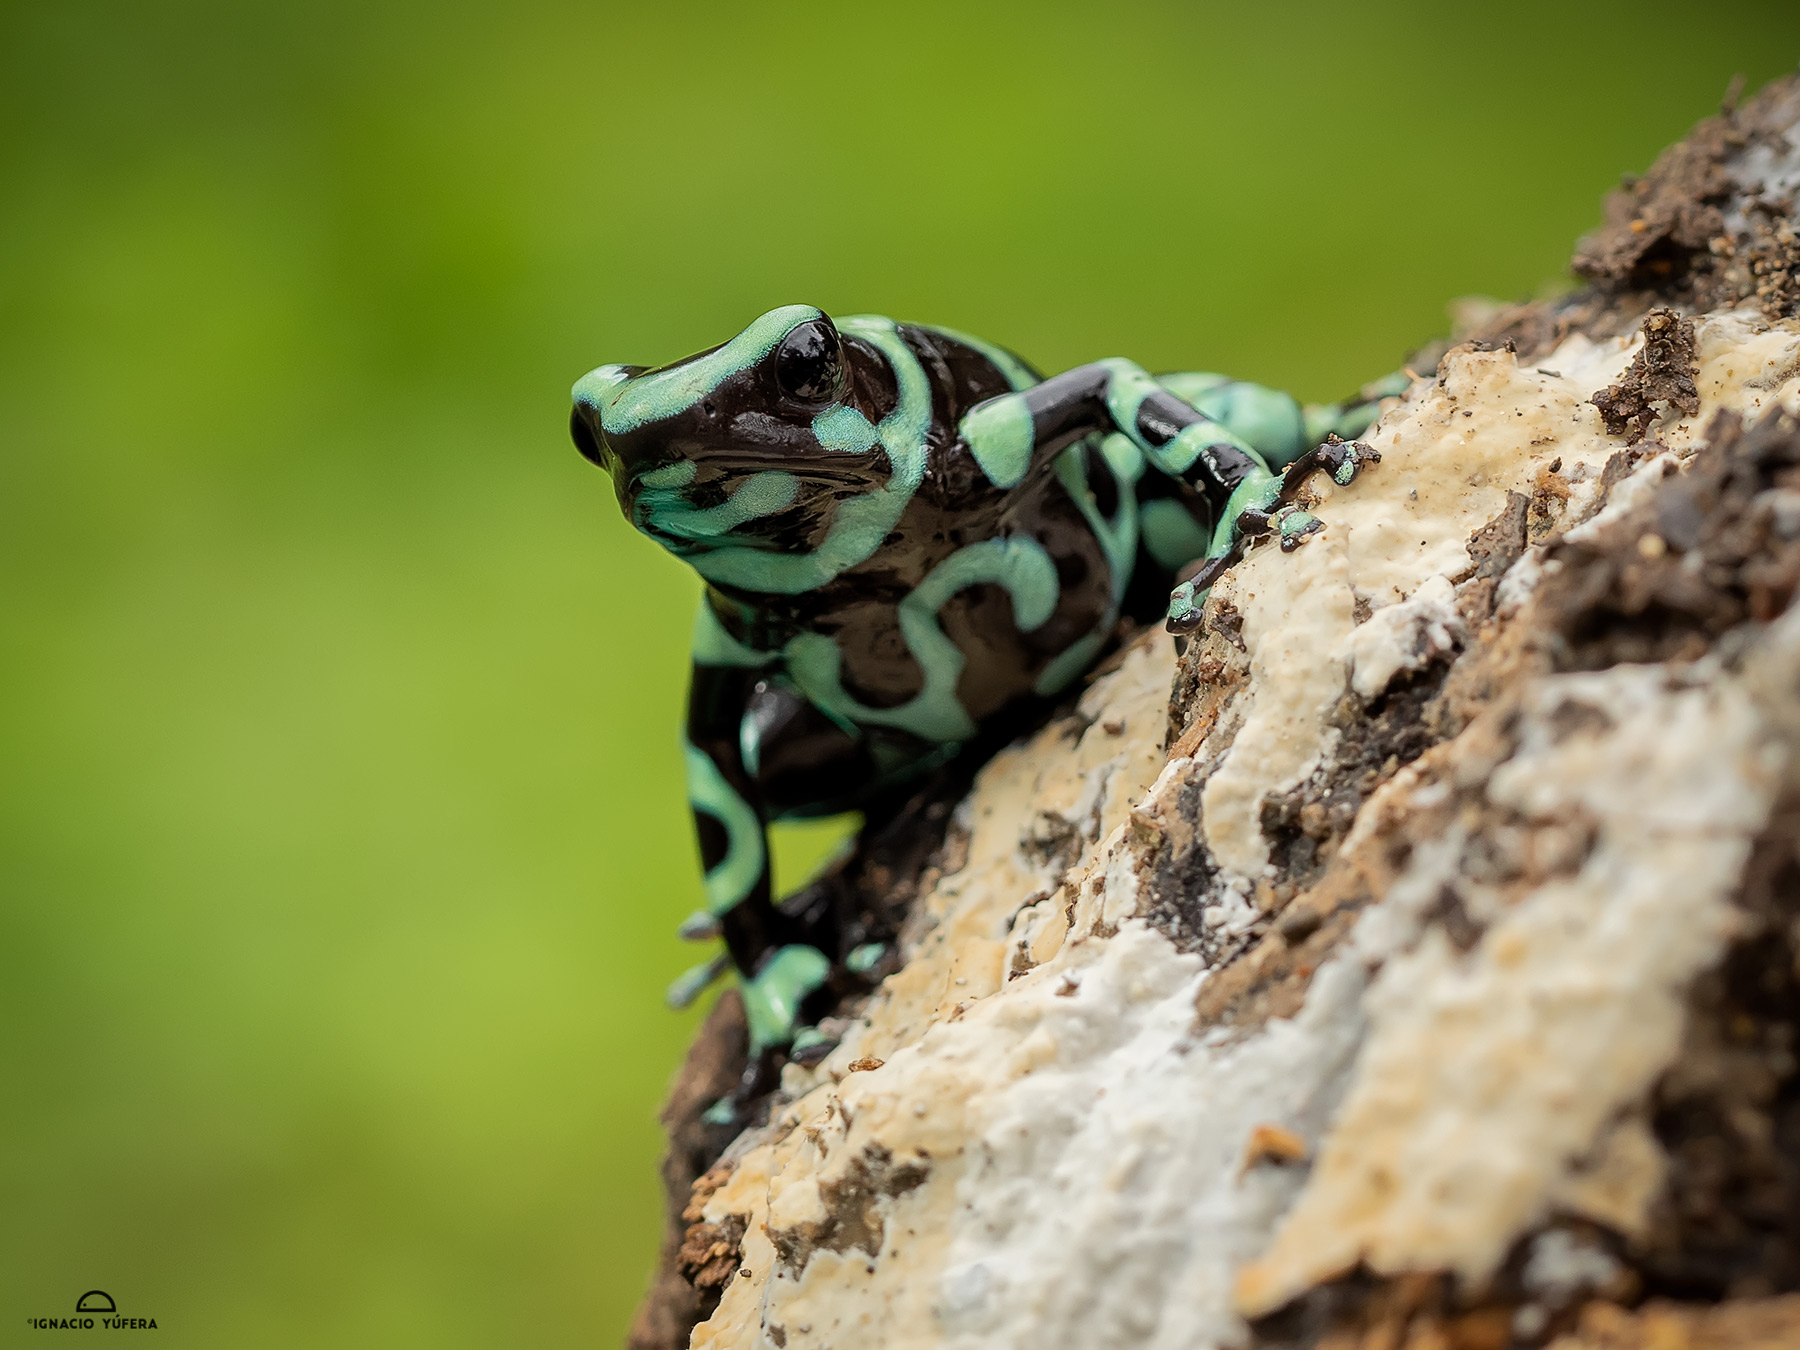 Green-and-black Poison Dart Frog (Dendrobates auratus), Fortuna, Panama, June